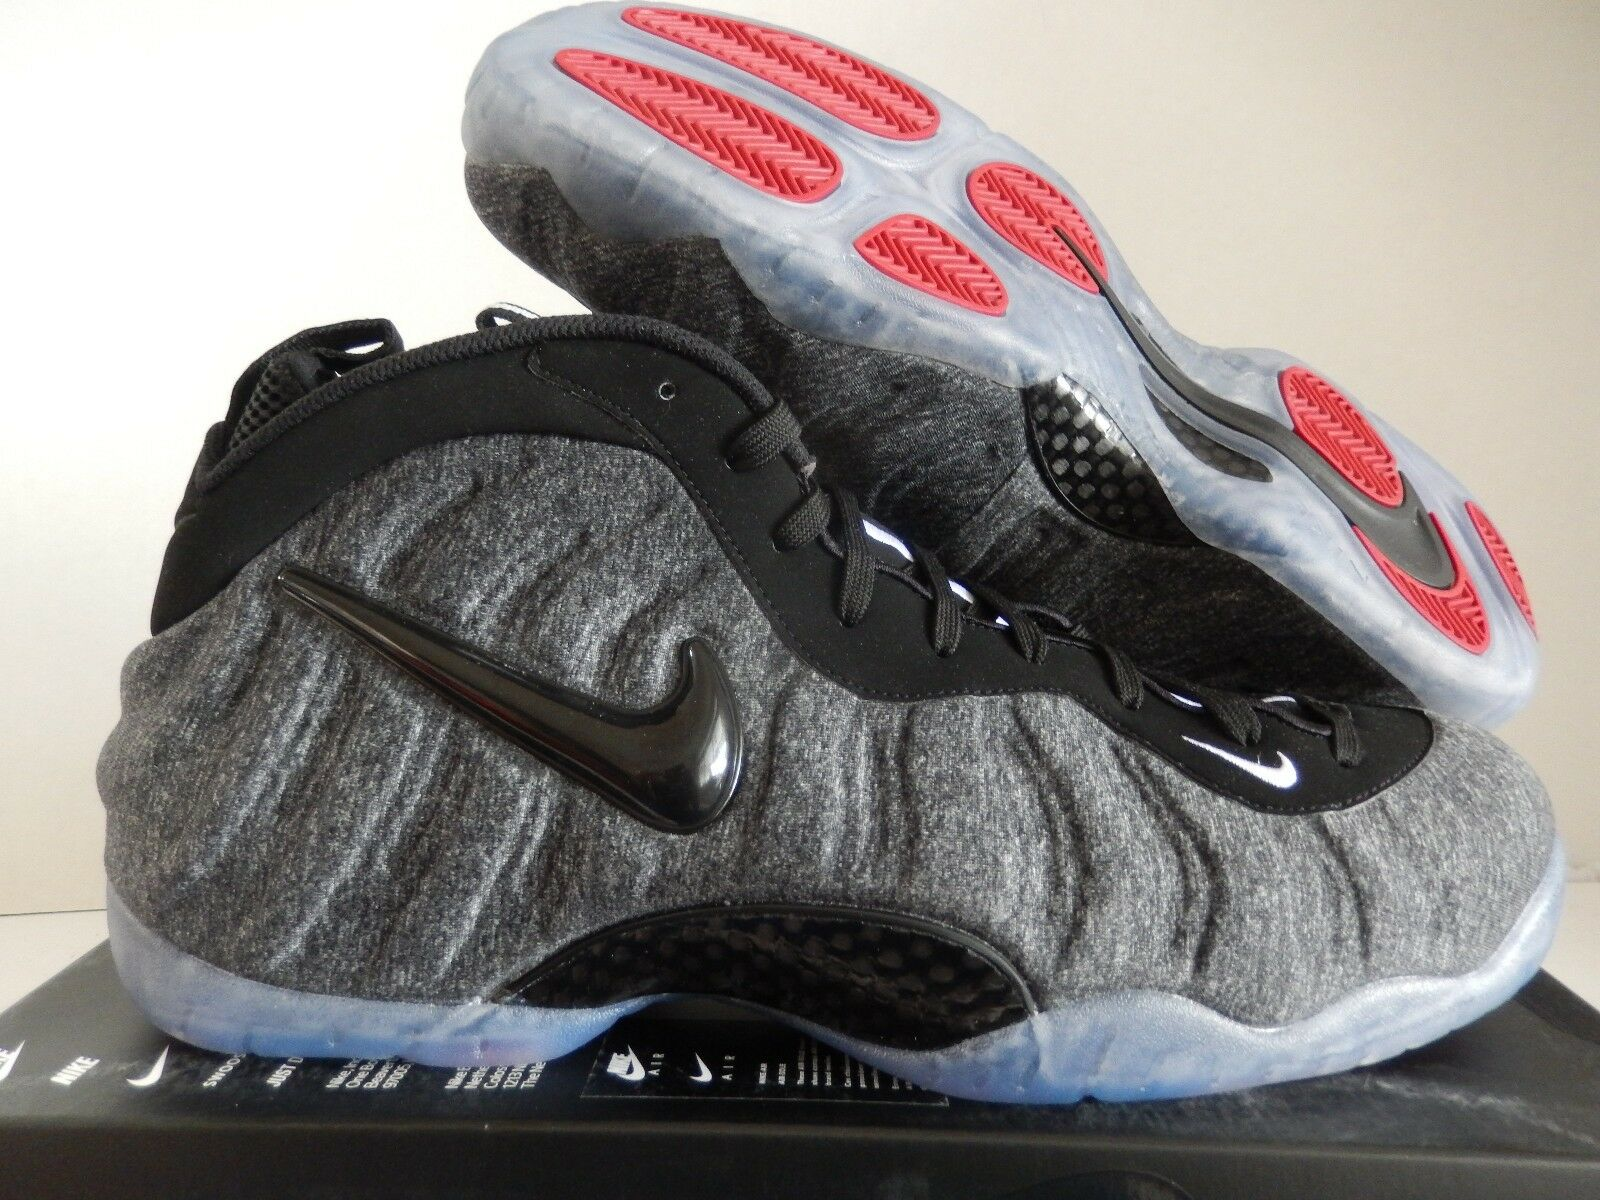 NIKE AIR FOAMPOSITE PRO FLEECE WOOL-DARK grigio-nero SZ SZ SZ 9.5 [624041-007] eaf647